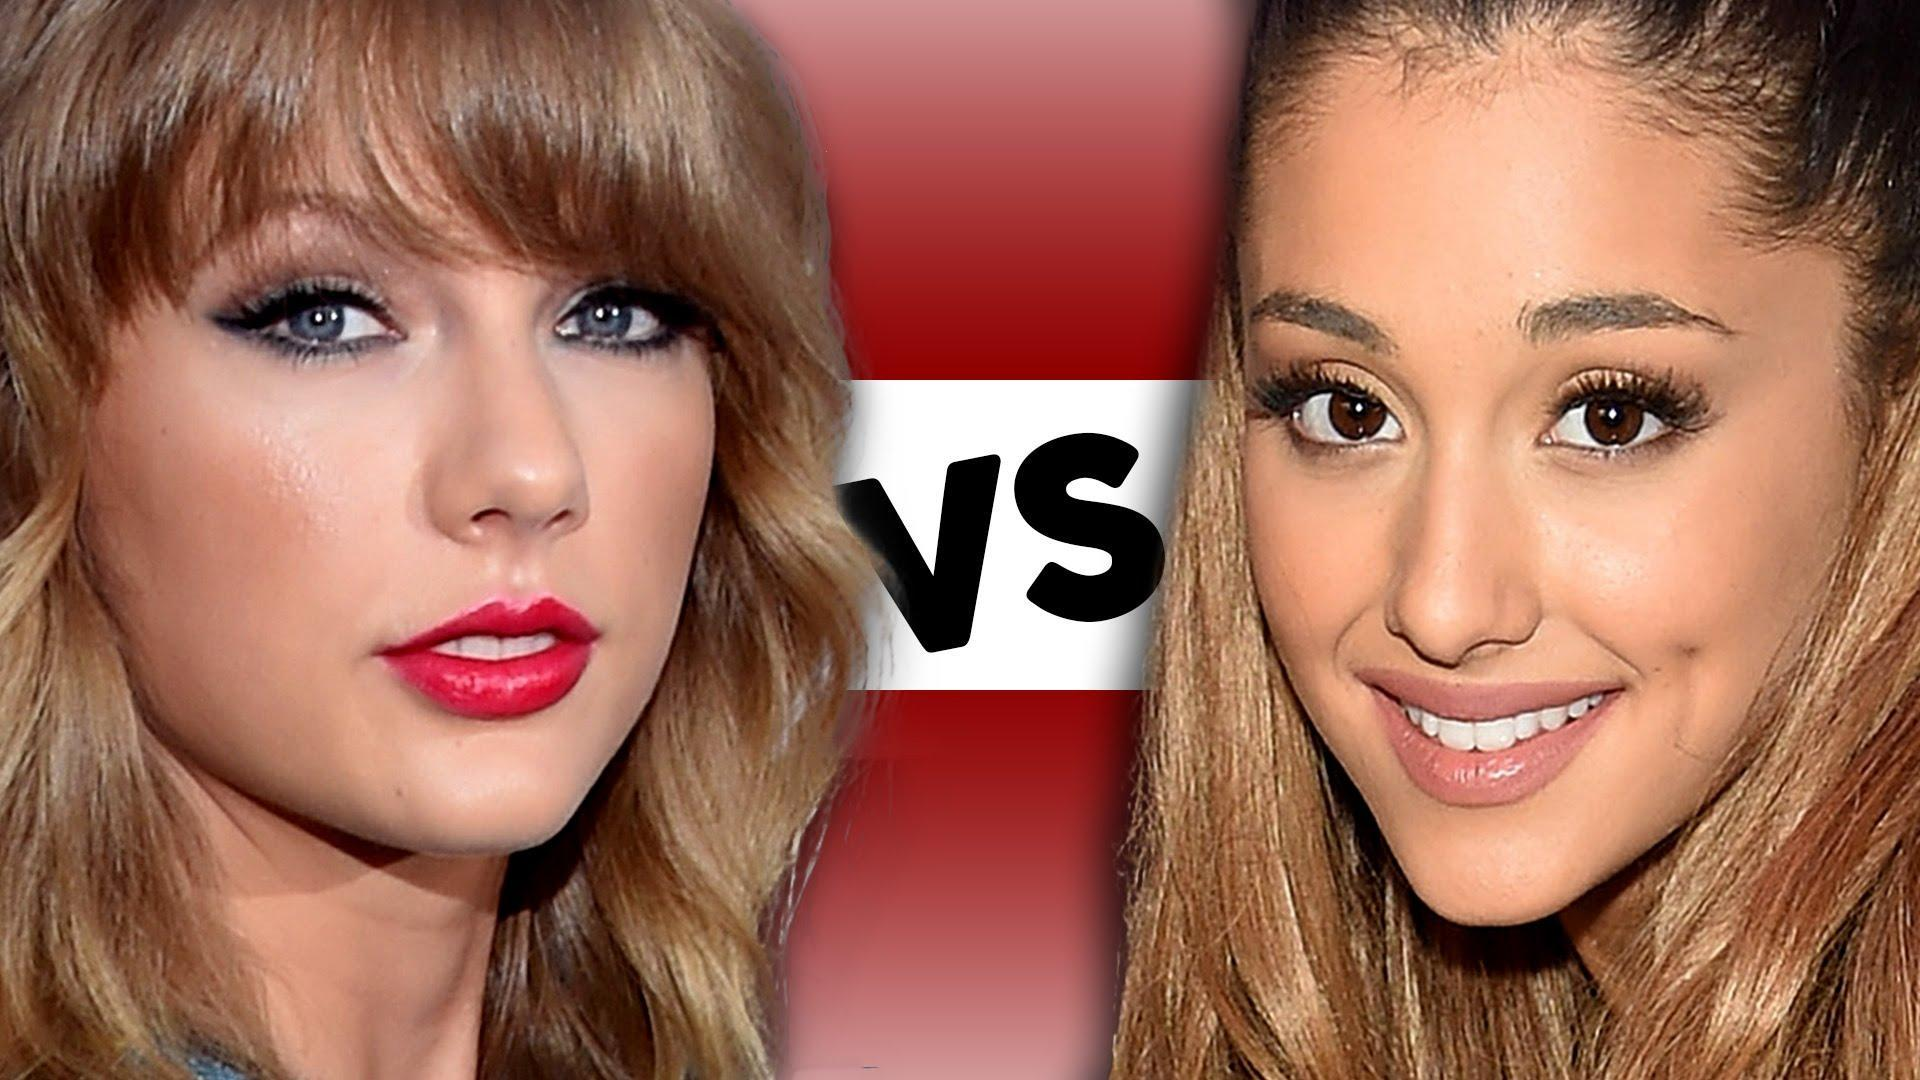 Ariana Grande or Taylor Swift? (Celeb Wars)